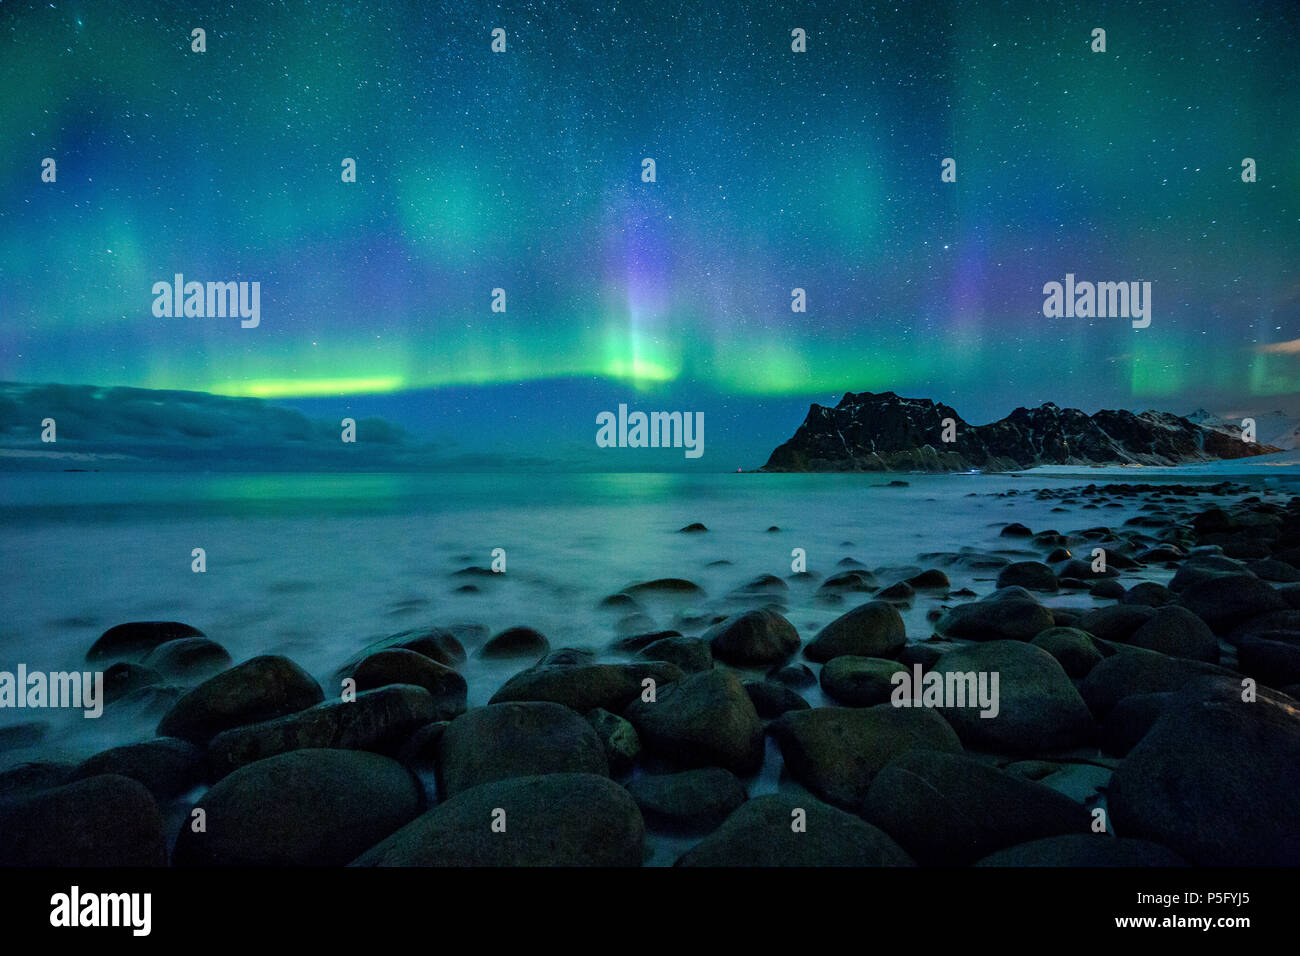 Amazing Aurora Borealis dancing over famous Uttakleiv Beach during a cold arctic night on Lofoten Islands archipelago in winter, Norway, Scandinavia - Stock Image